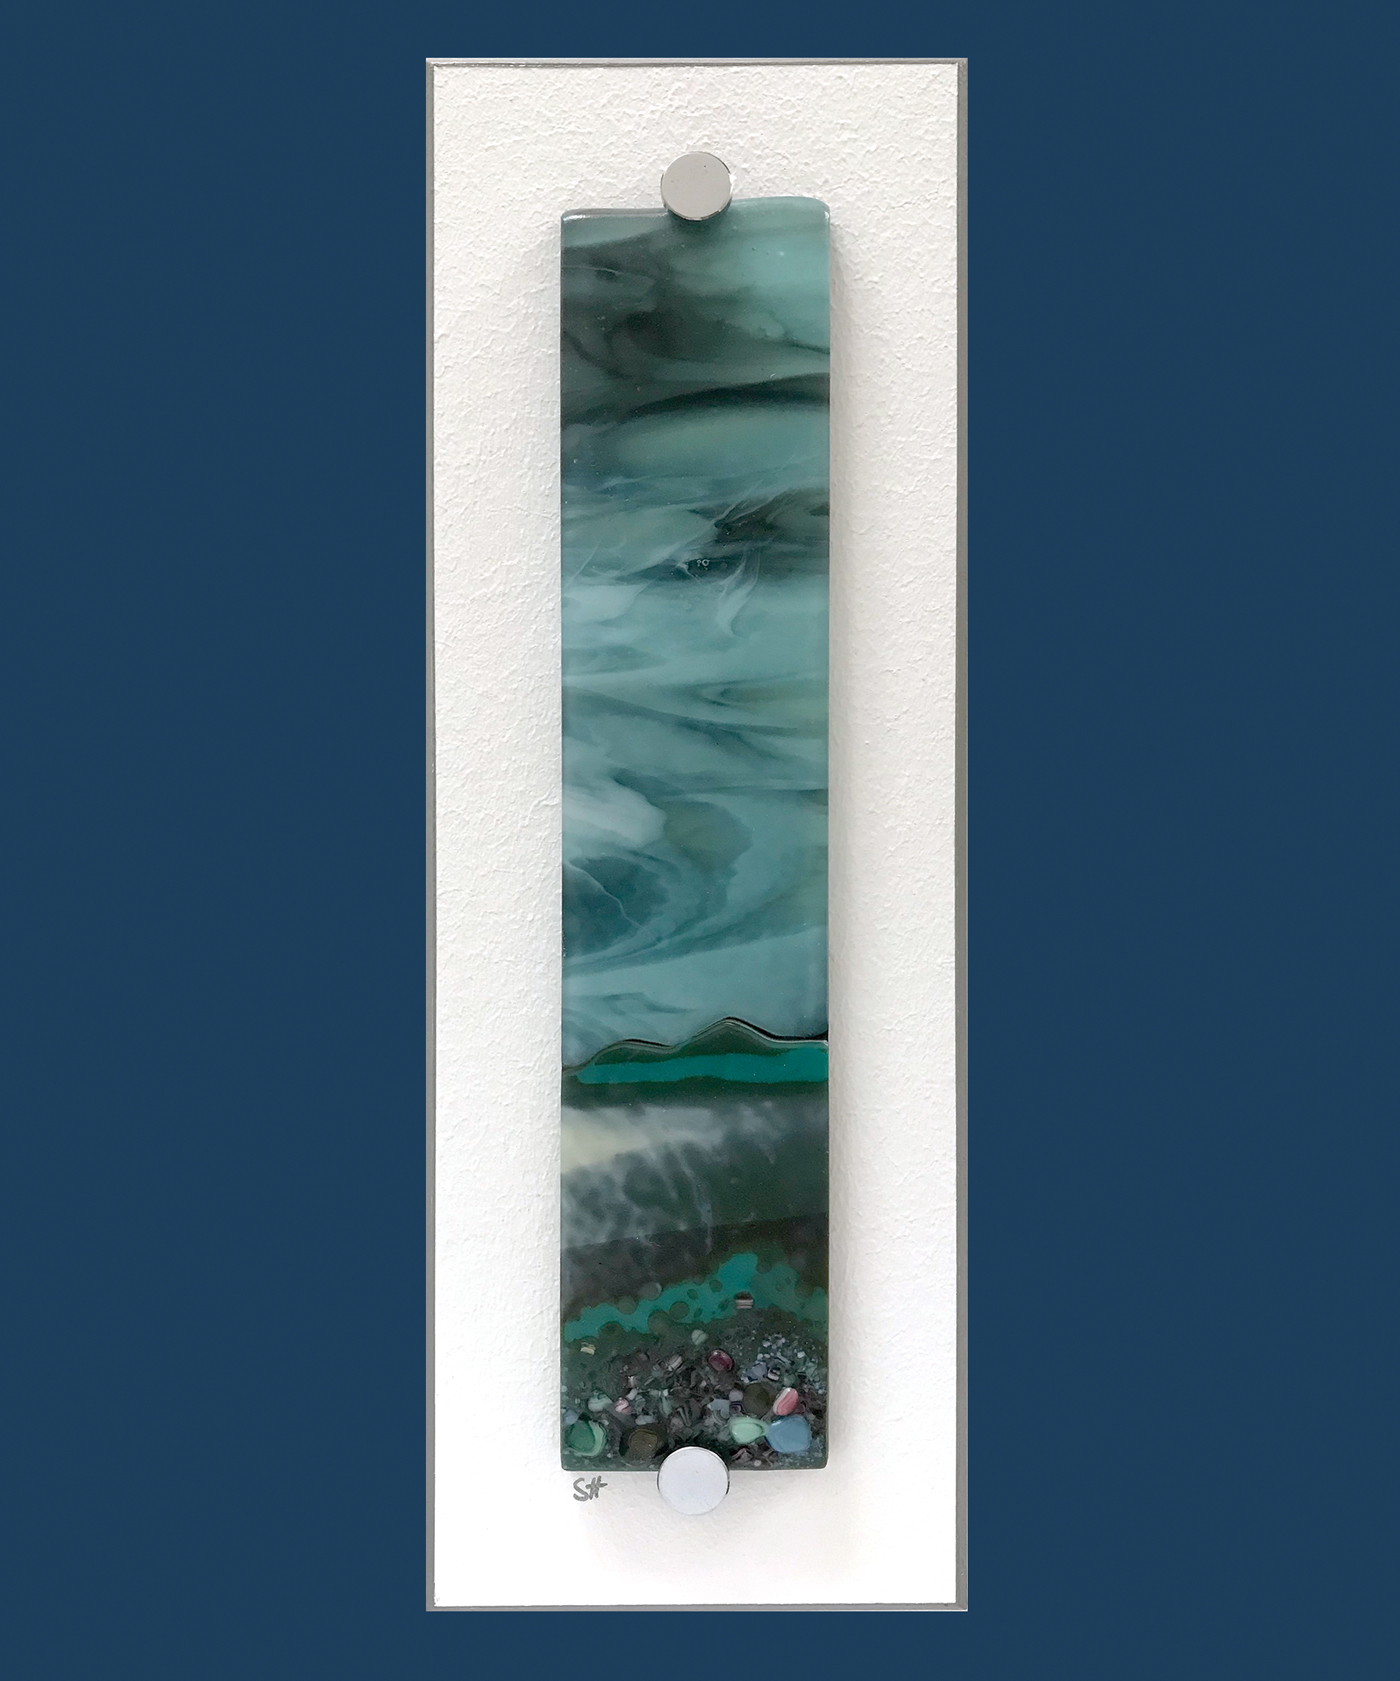 Winter Landscapes fused glass wall art – greens/browns/vanilla and pink/blue specks in fore, moody light aqua sky. Satin finish.